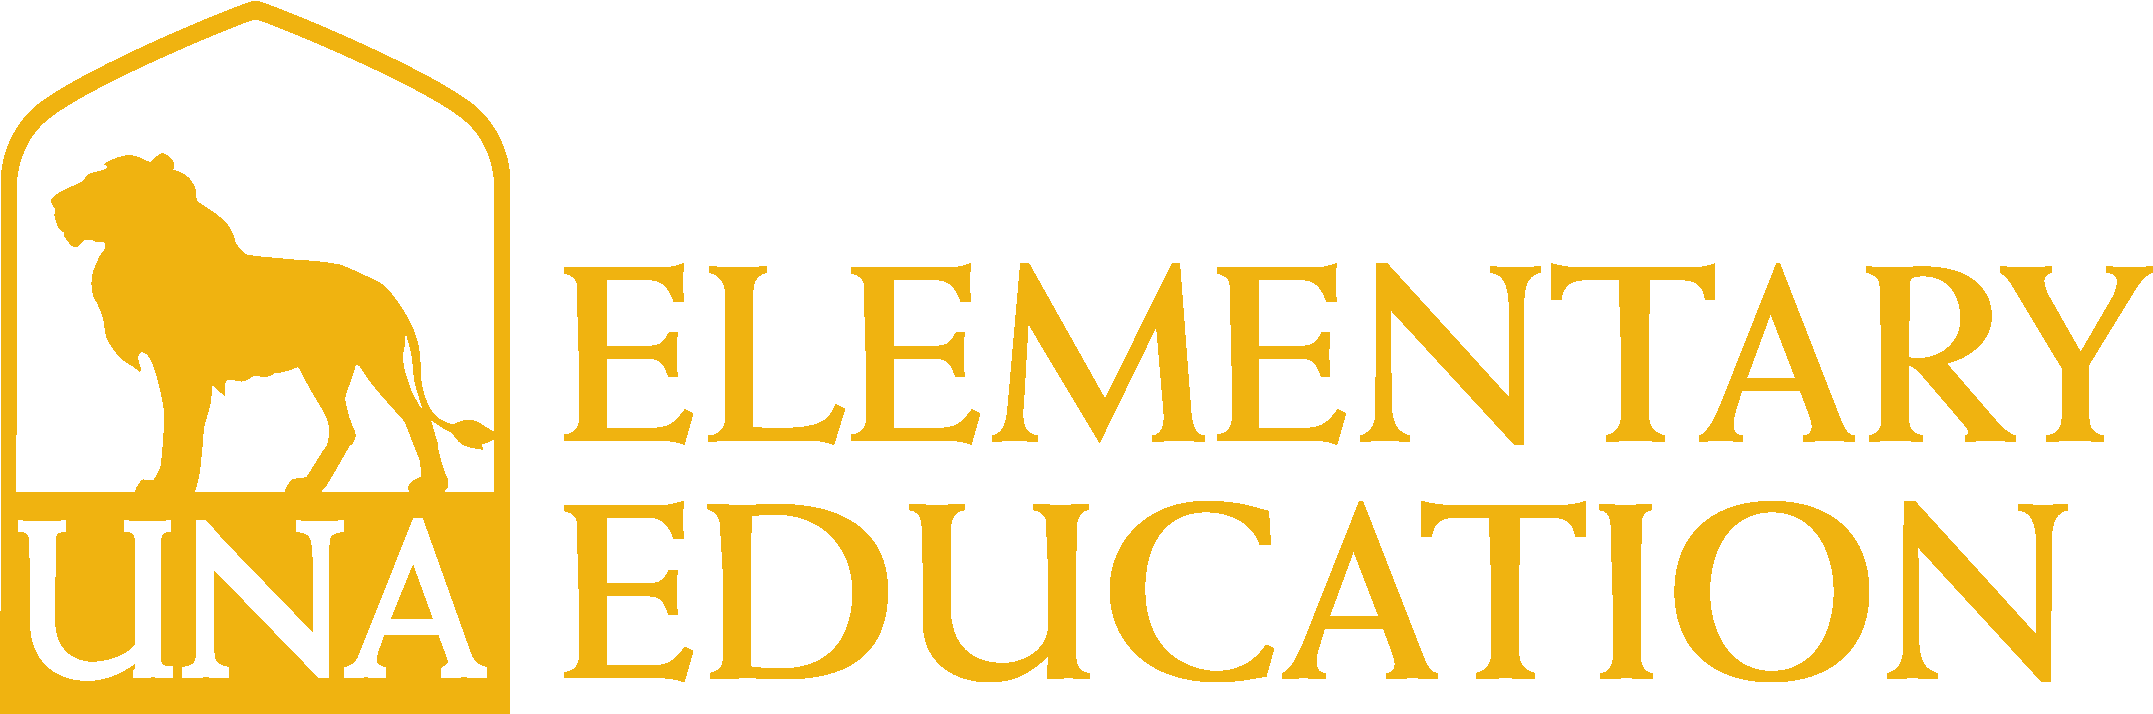 College of Business - Elementary Education Logo - Gold - Version 3